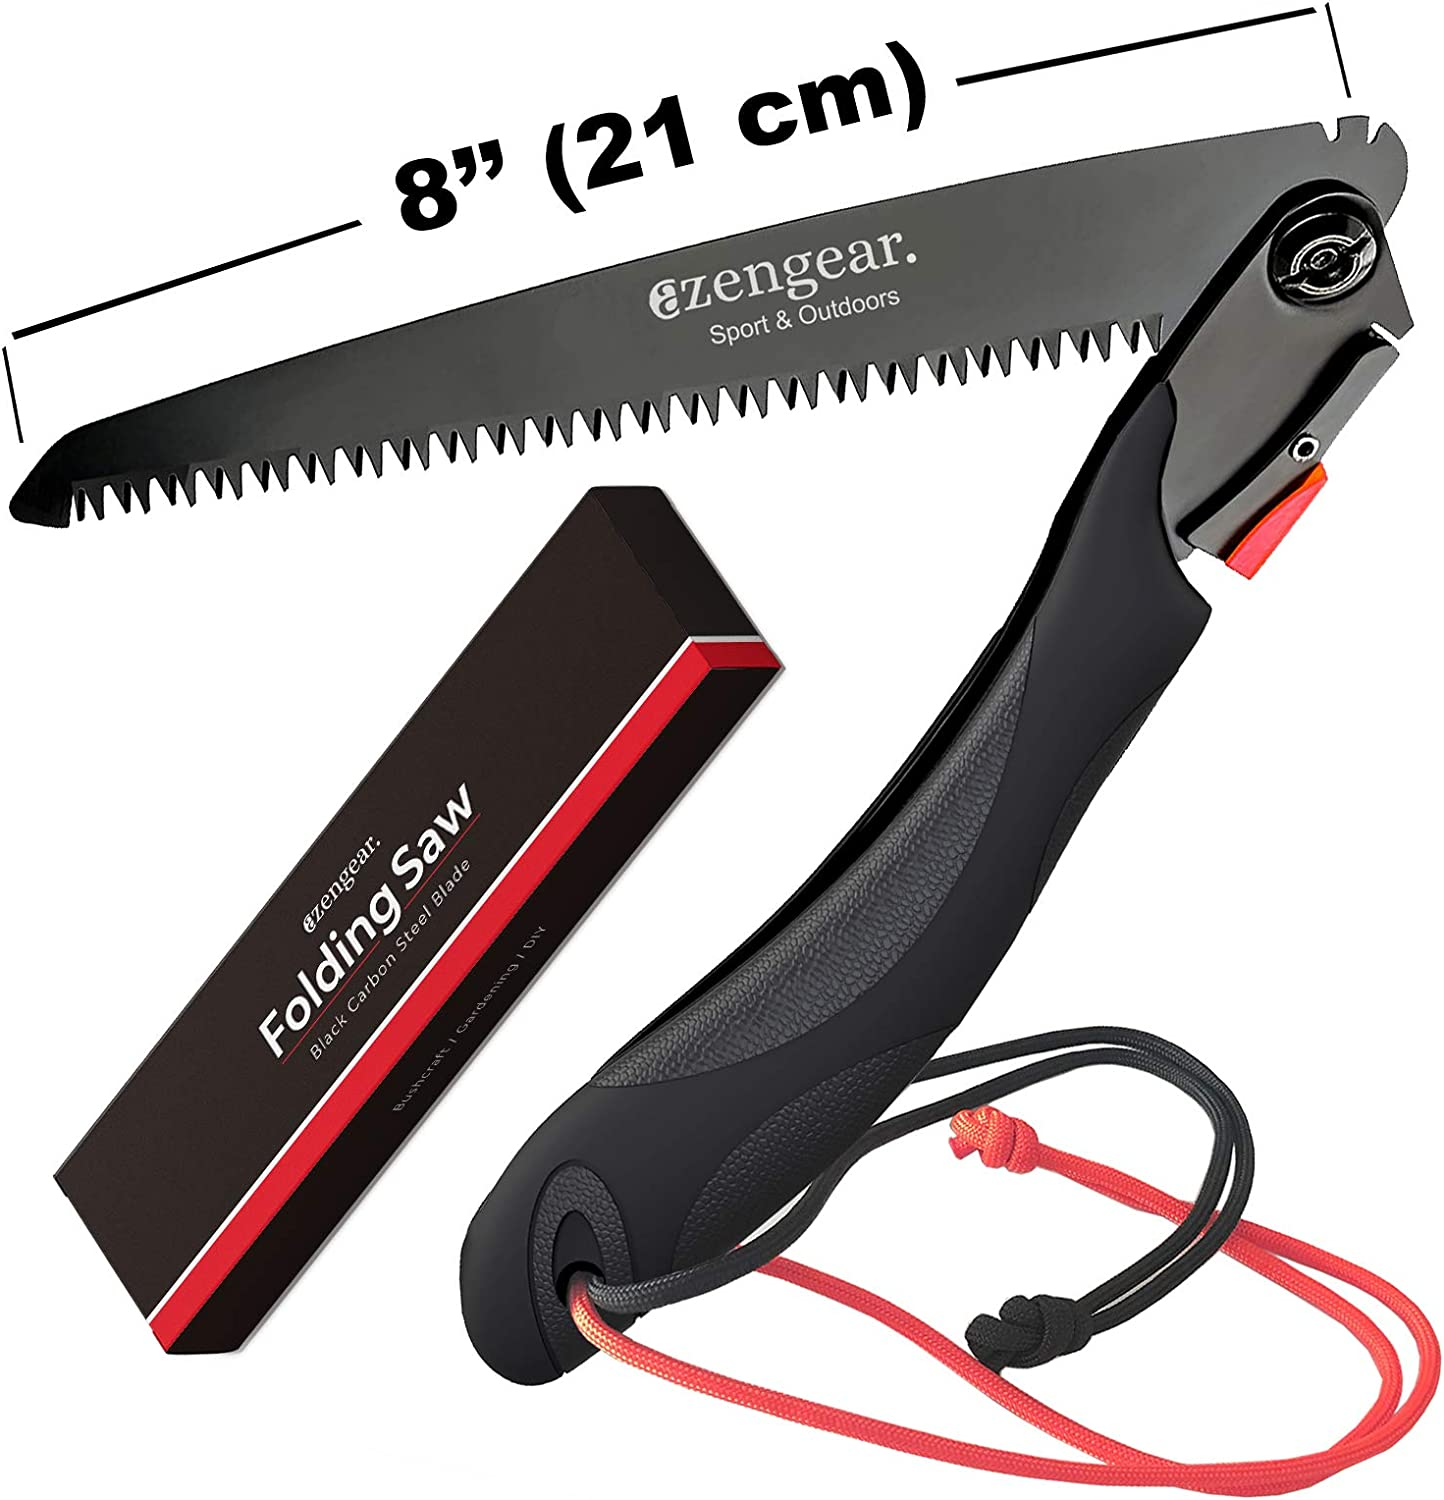 Details about  /Heavy Duty Folding Saw Extra Long Durable 11 Inches Blade Wood Camping Pruning